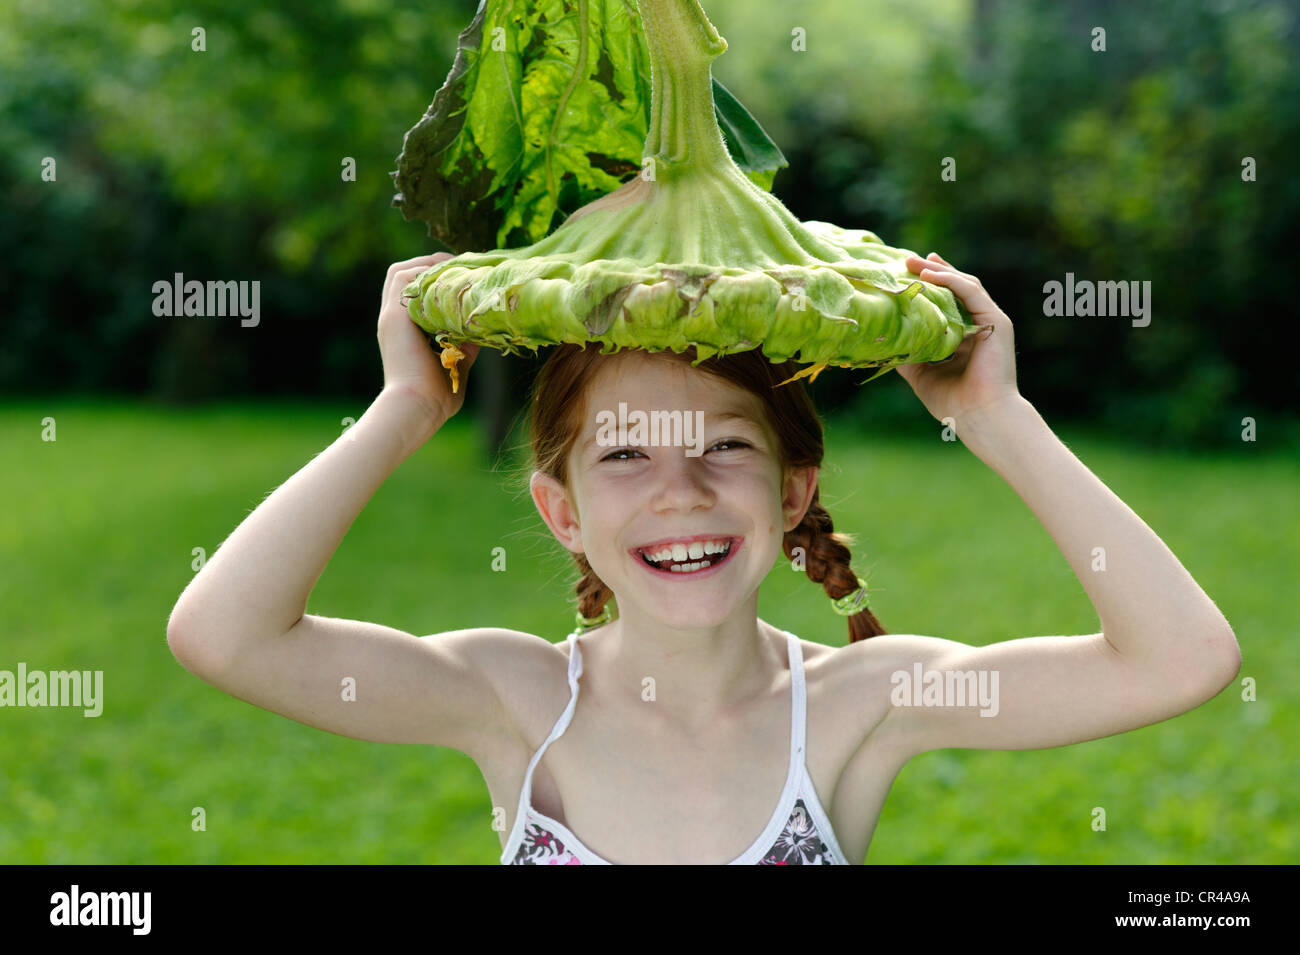 Girl with a big sunflower as a hat - Stock Image